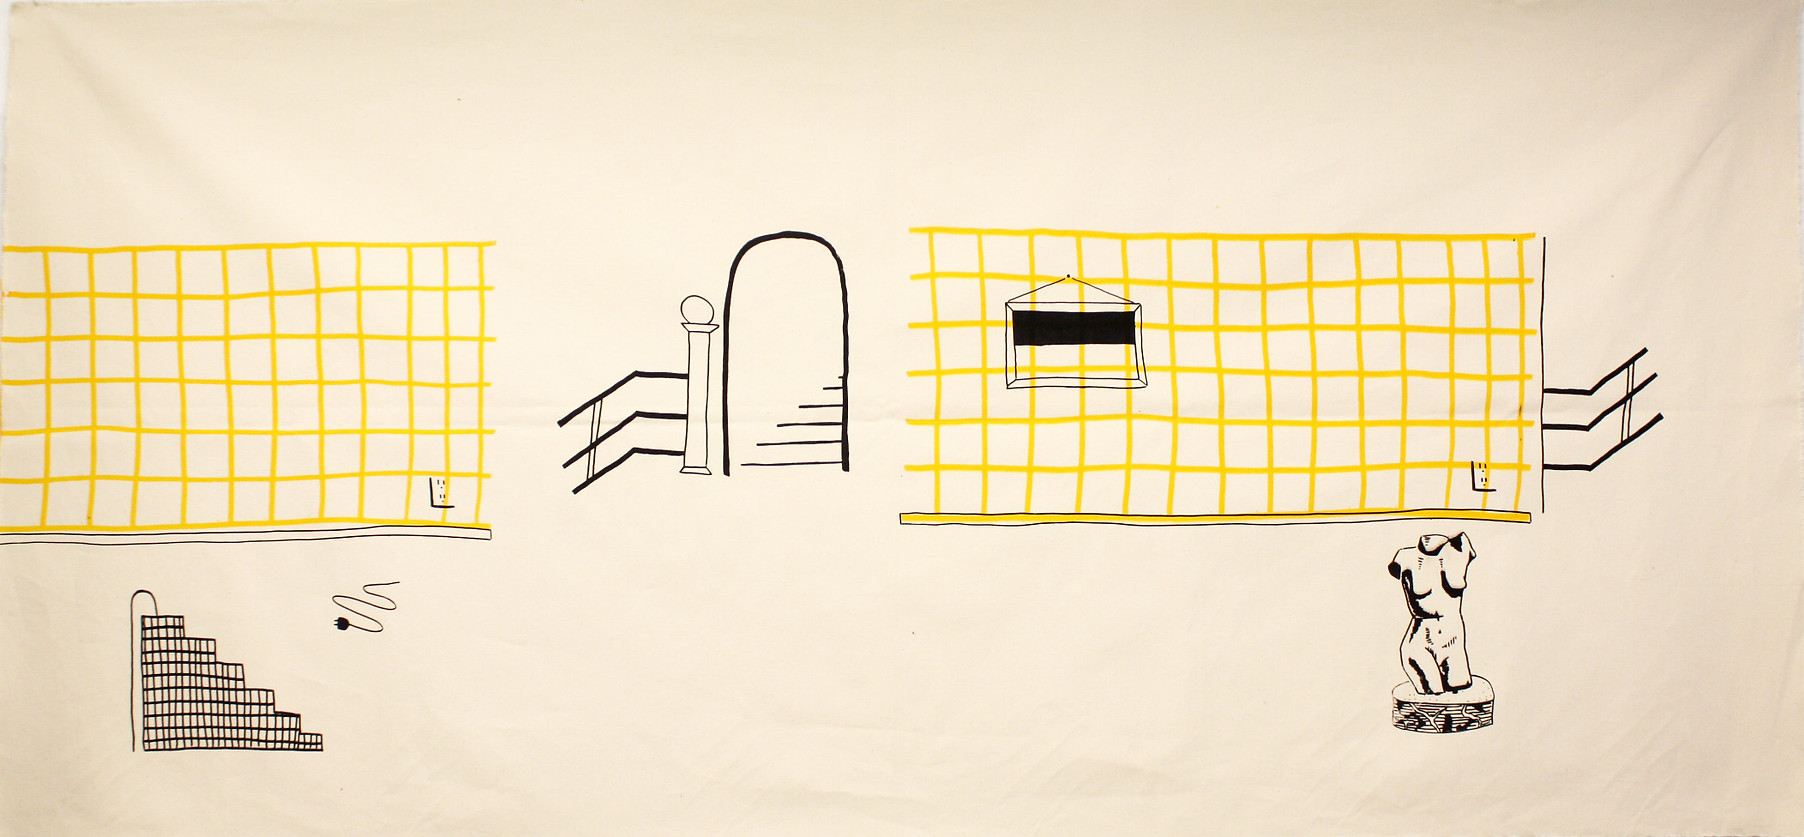 Continuous Interior (screenprint on fabric, 2015)